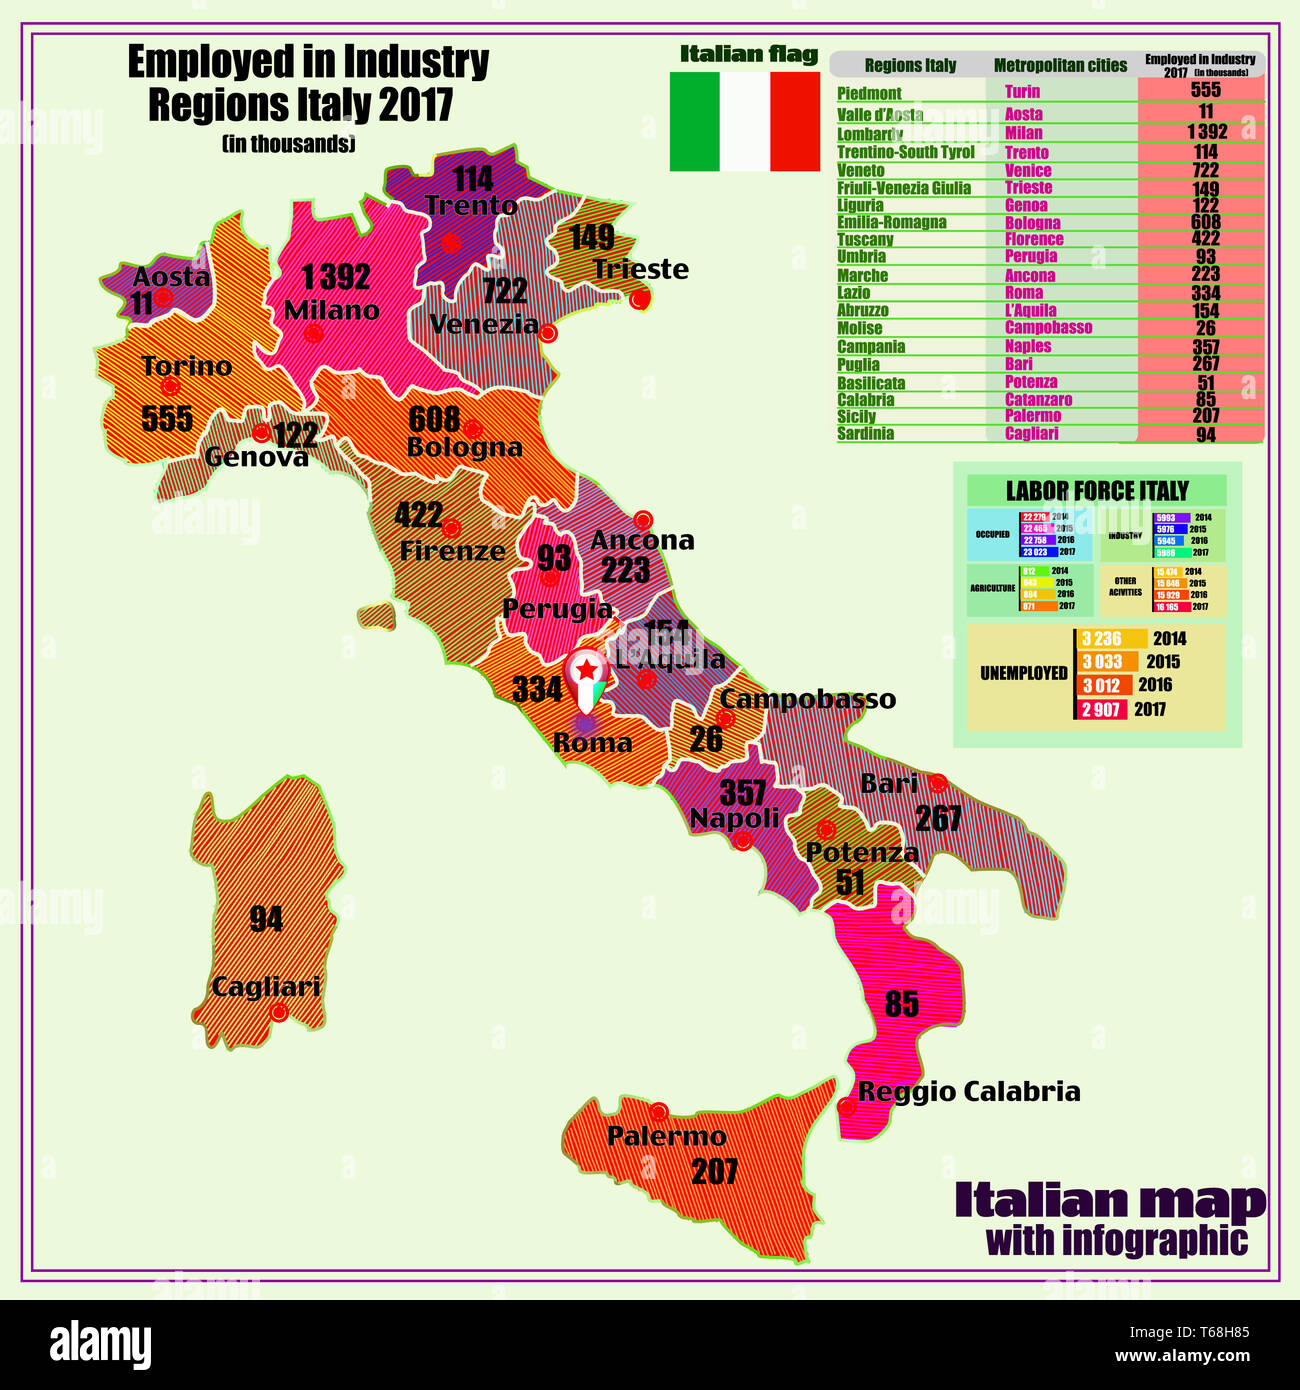 Map Showing Regions Of Italy.Map Of Italy With Infographic Employed In Industry Illustration